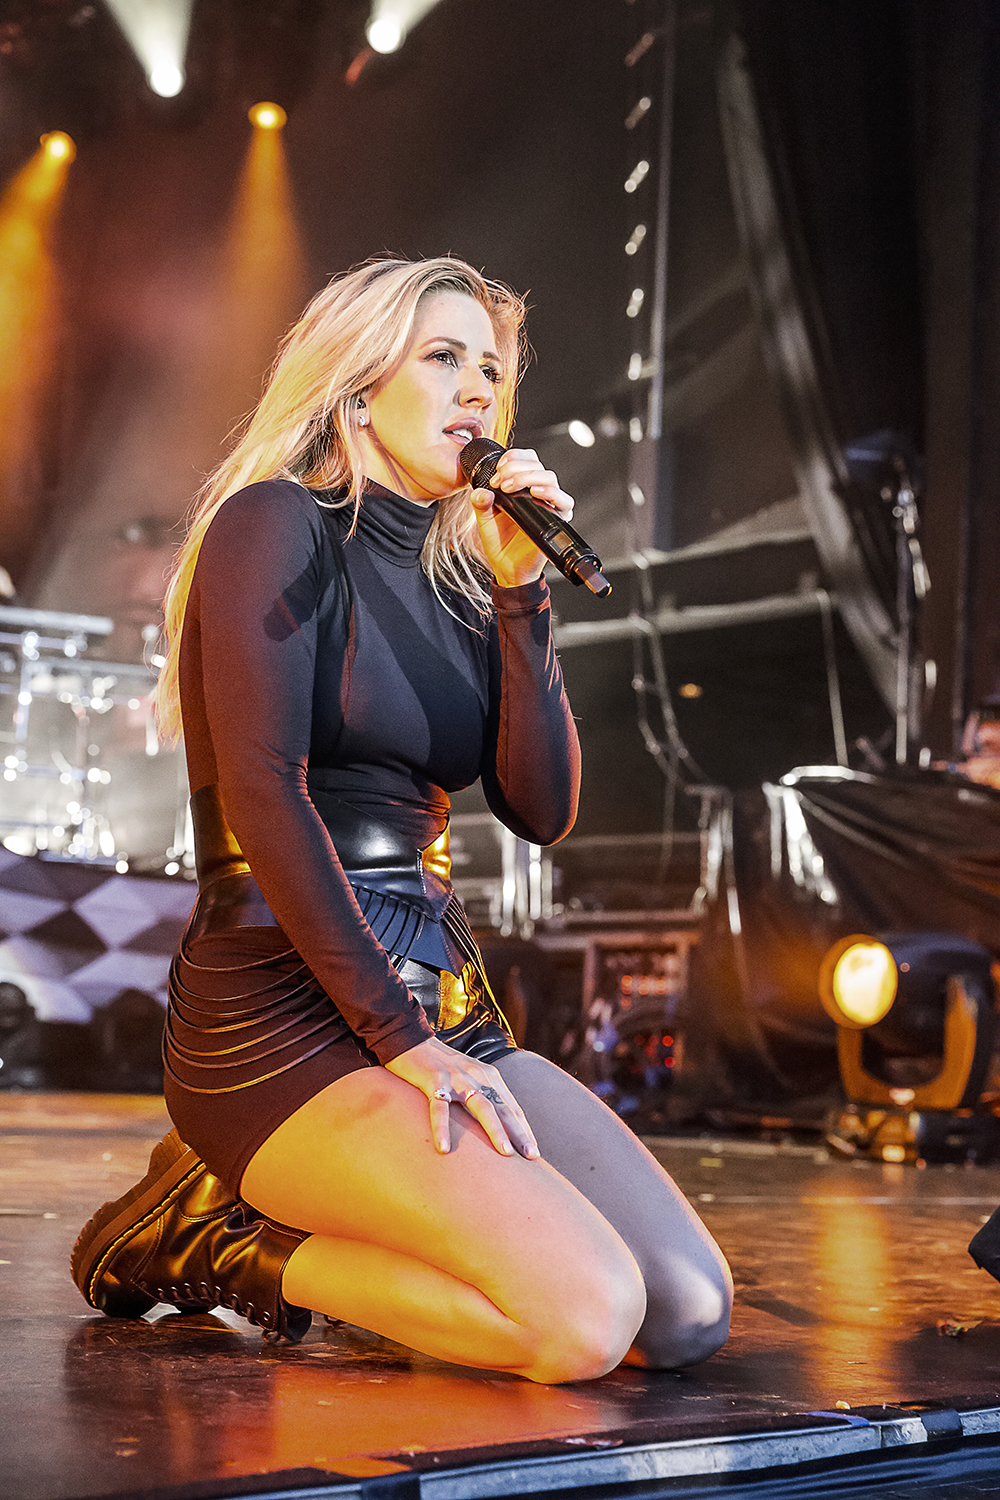 Ellie_Goulding_May102016_0530